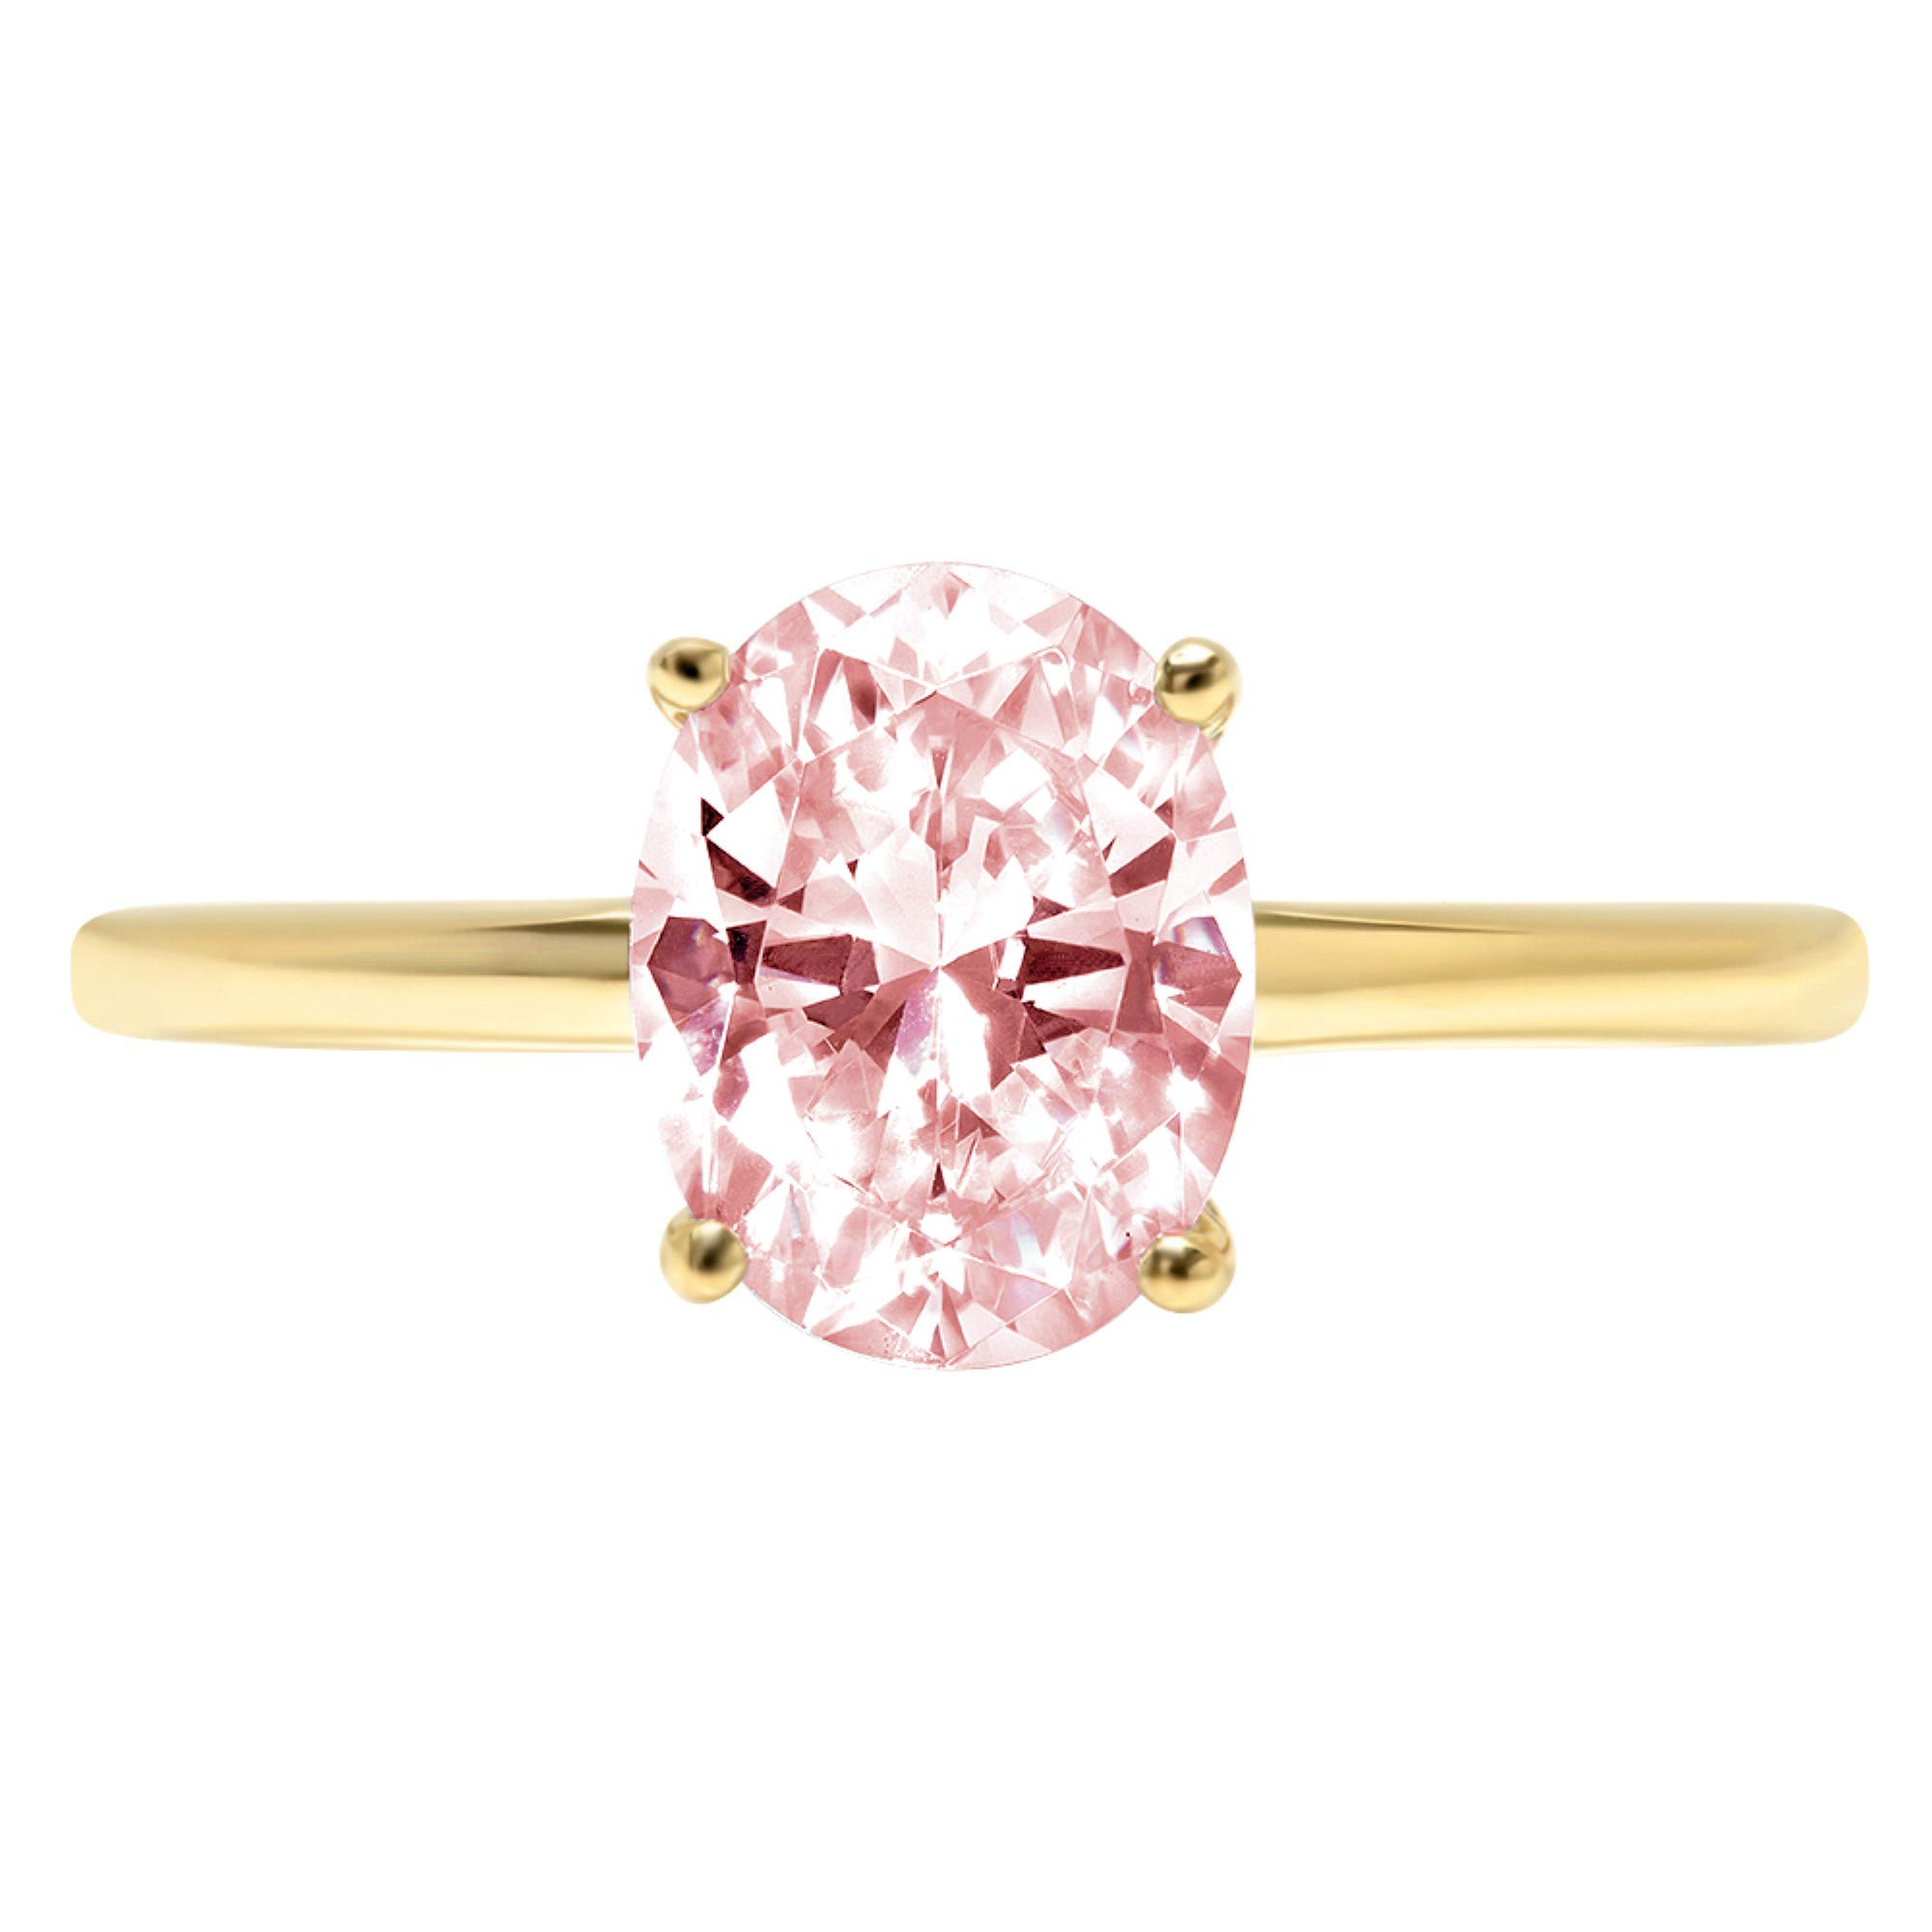 2.5ct Brilliant Oval Cut Solitaire Pink Simulated Diamond CZ Ideal VVS1 D 4-Prong Engagement Wedding Bridal Promise Anniversary Ring Solid Real 14k Yellow Gold for Women